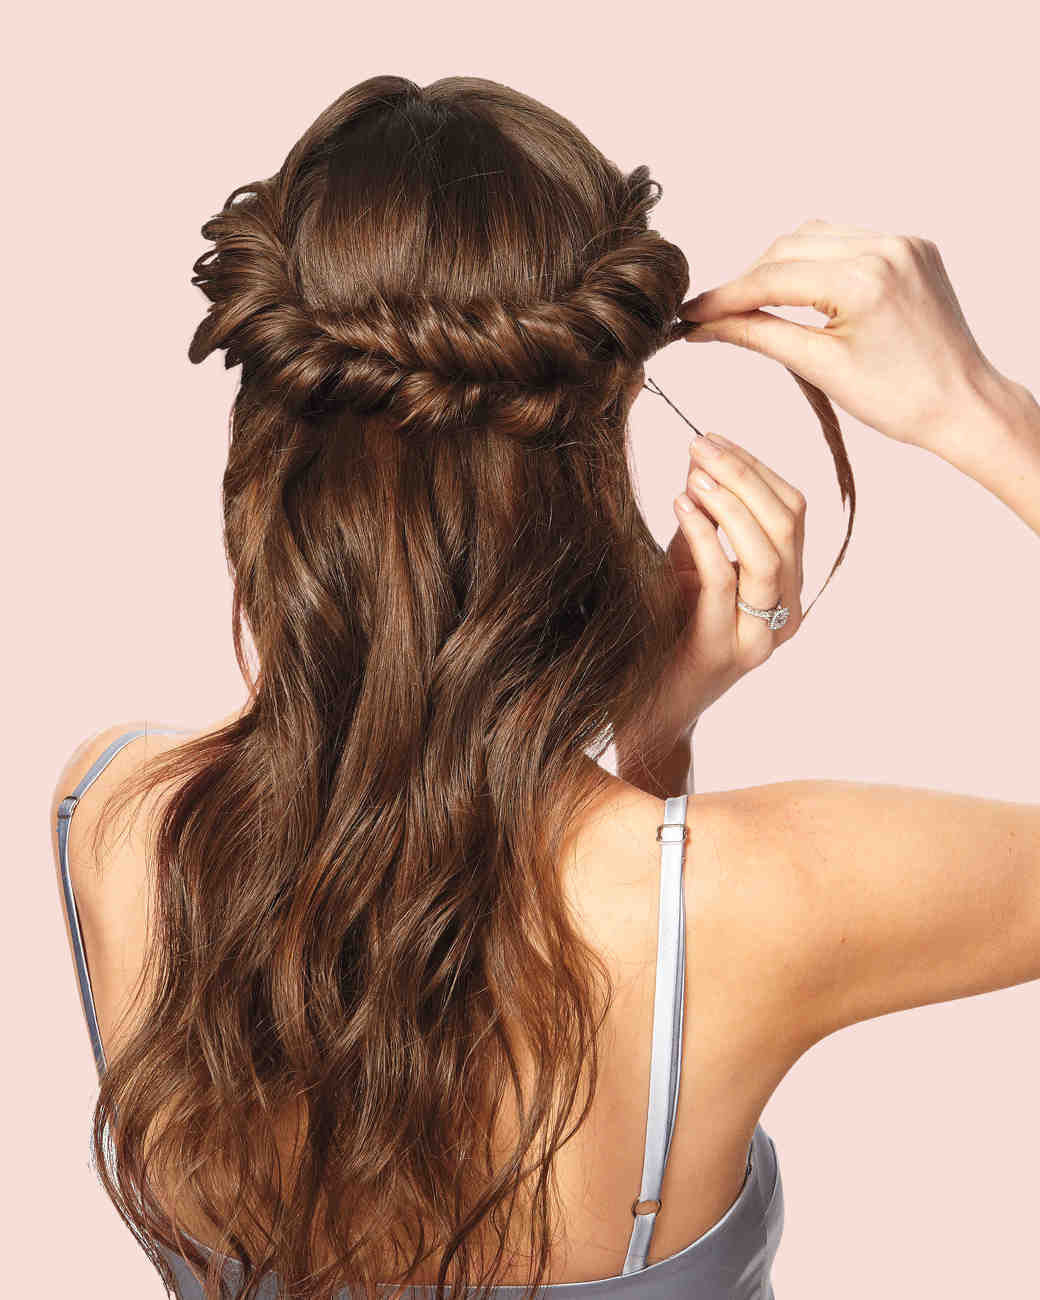 Best ideas about DIY Wedding Updo . Save or Pin DIY Wedding Updos Now.